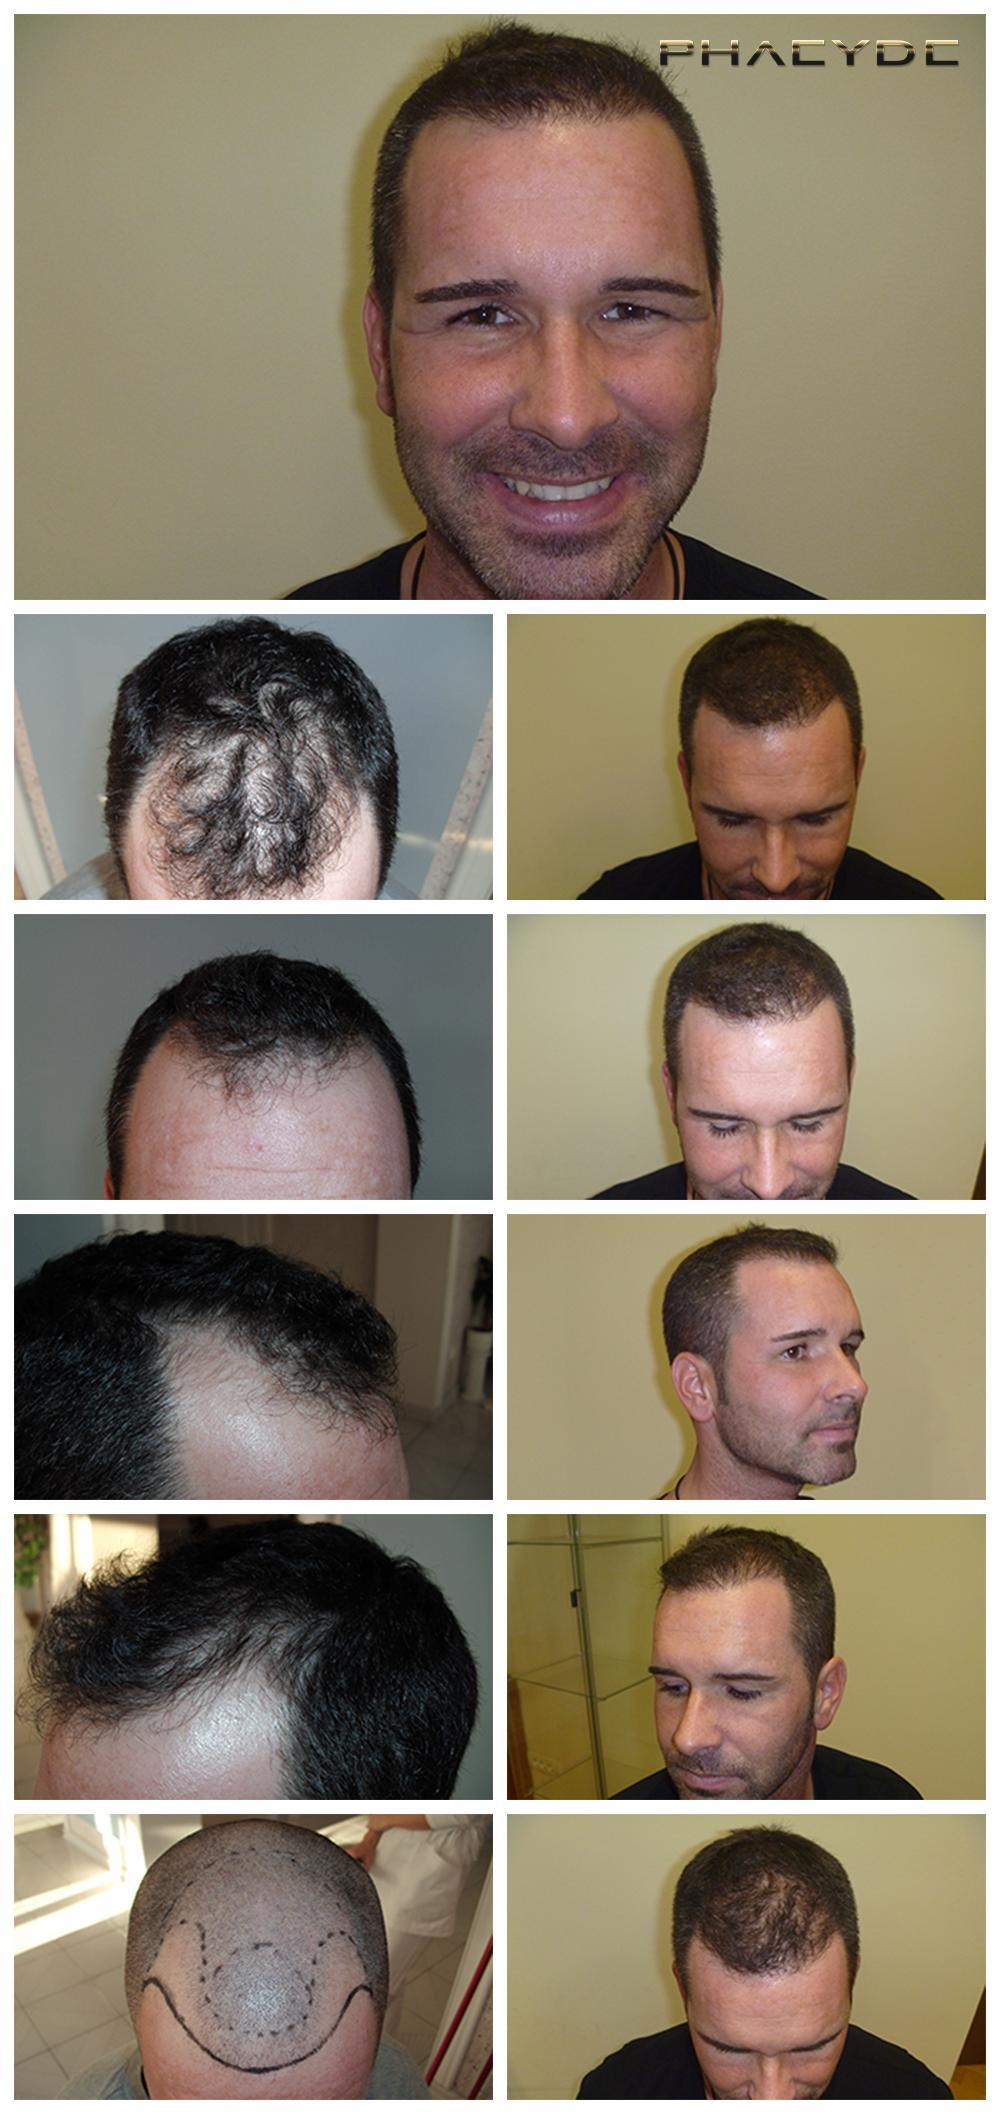 Hair transplant fue results before after photos zsolt vincze - PHAEYDE Clinic